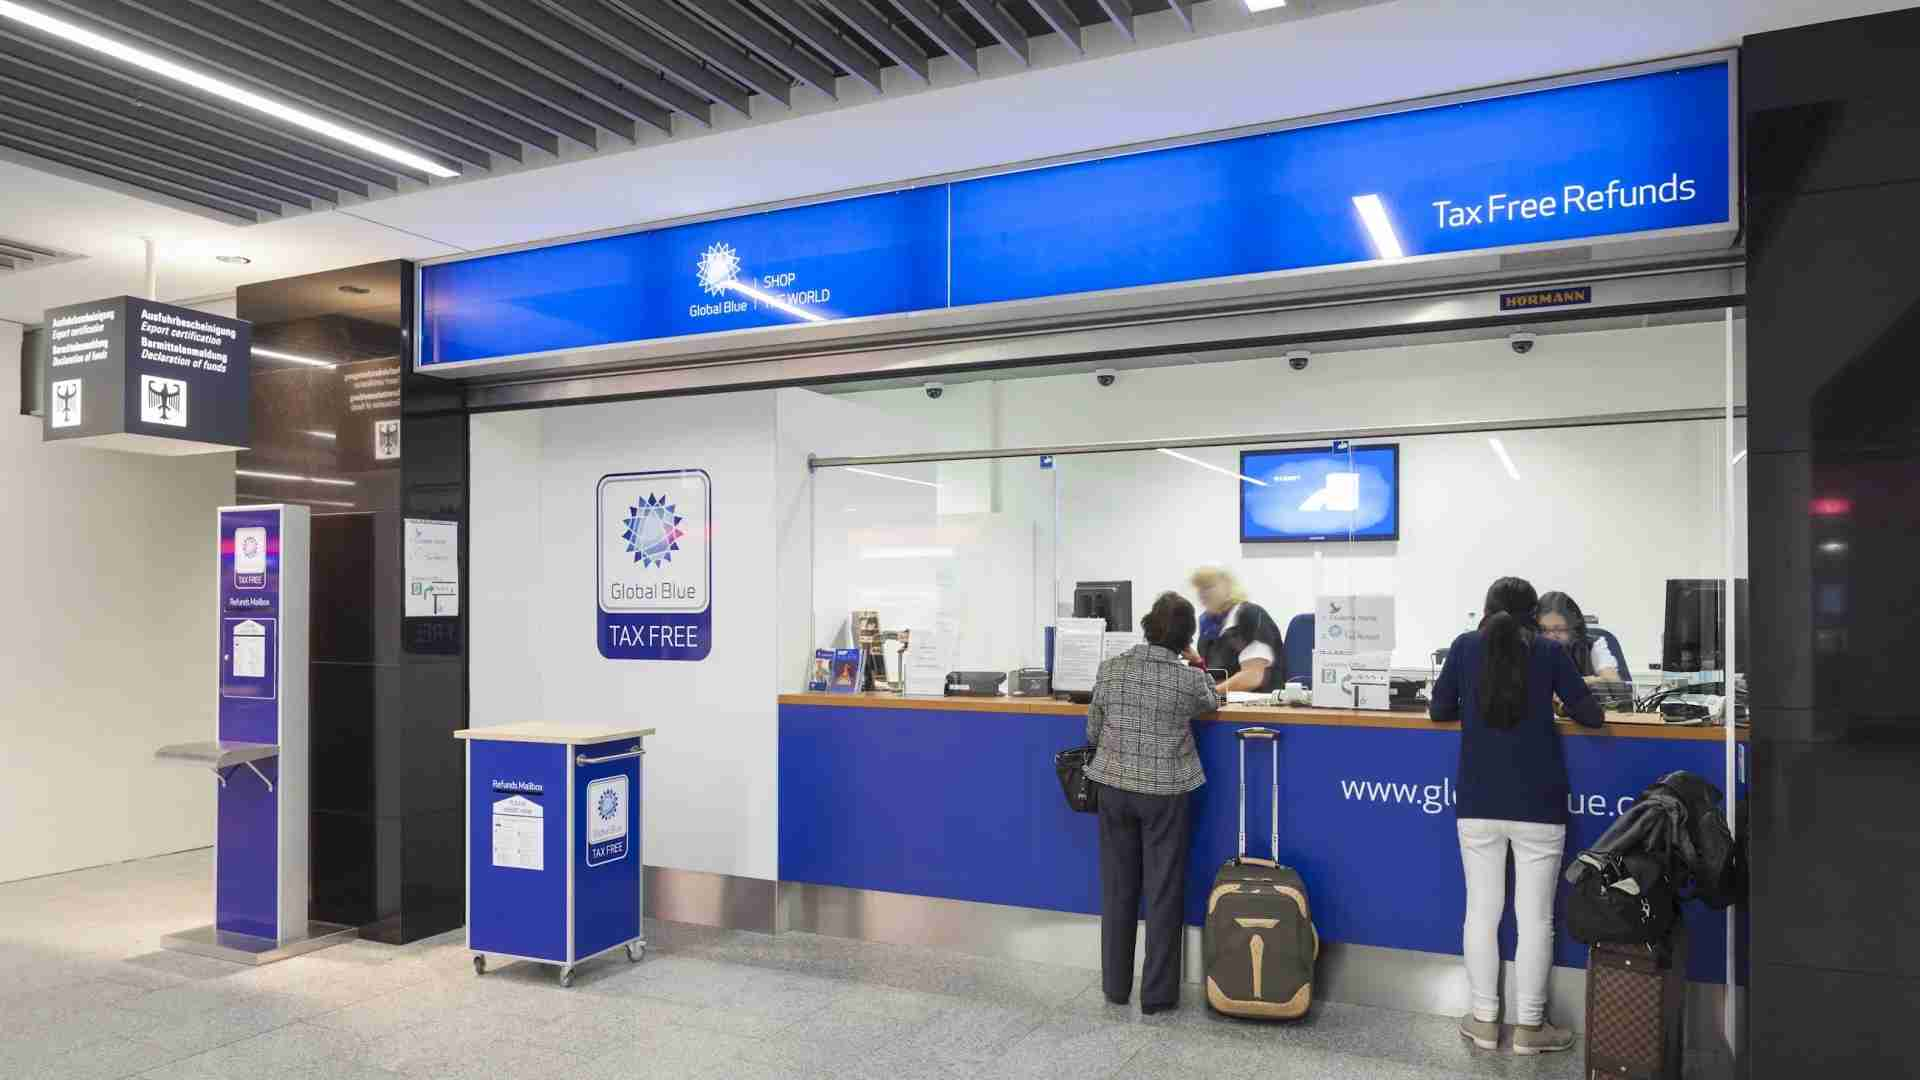 VAT refund agencies like Global Blue have locations in major airports where you can get your VAT refund. (Frankfurt Airport)